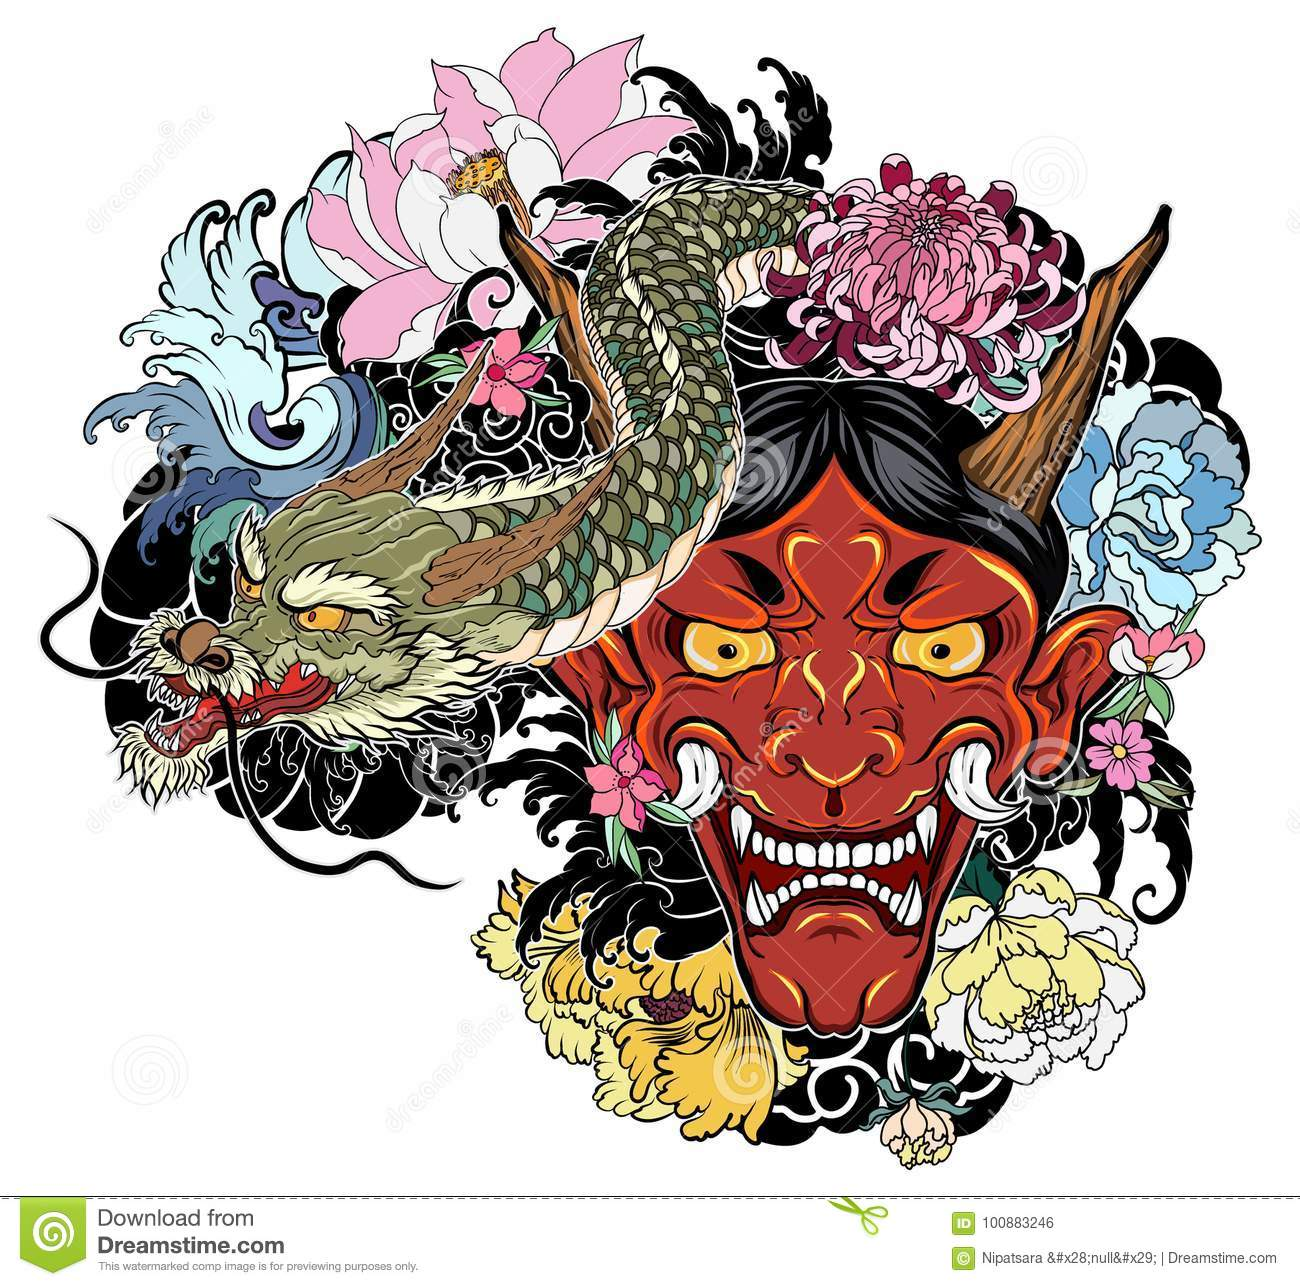 f0b9101b03a7e Hand drawn Oni mask with cherry blossom and peony flower.Japanese demon mask  on wave and sakura flower tattoo.